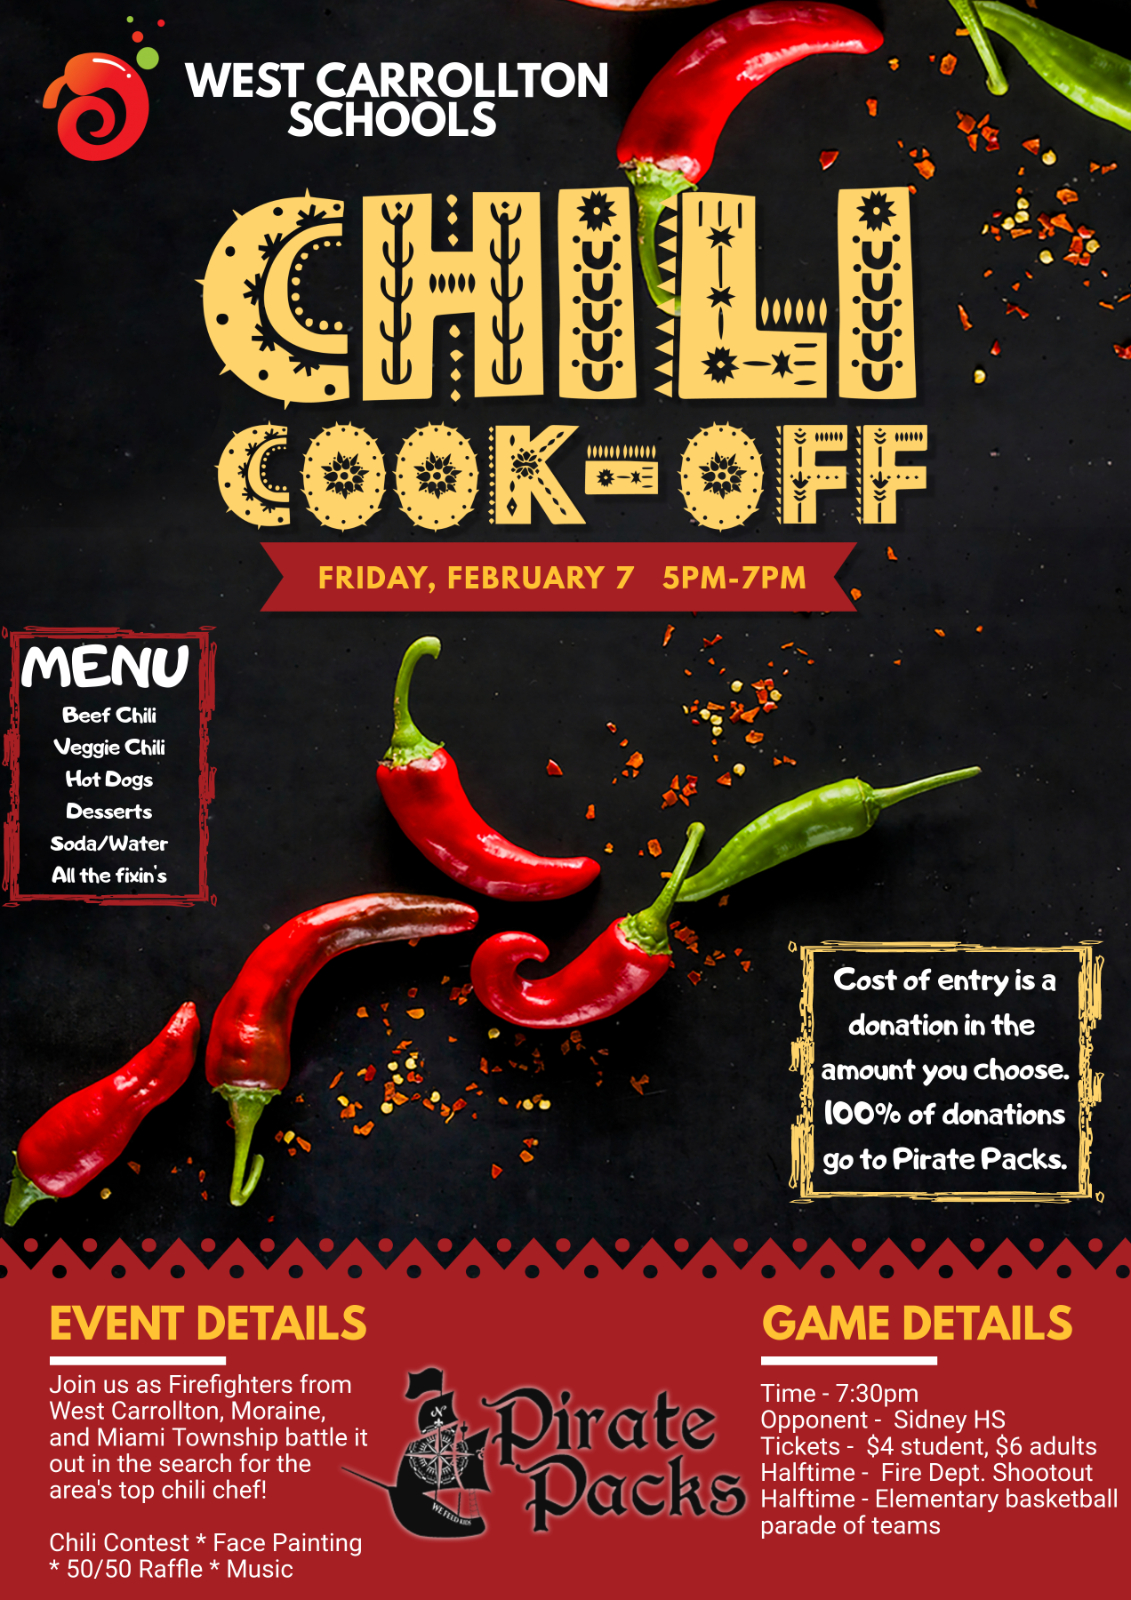 Friday Night Basketball, Chili Cook Off, and MORE!